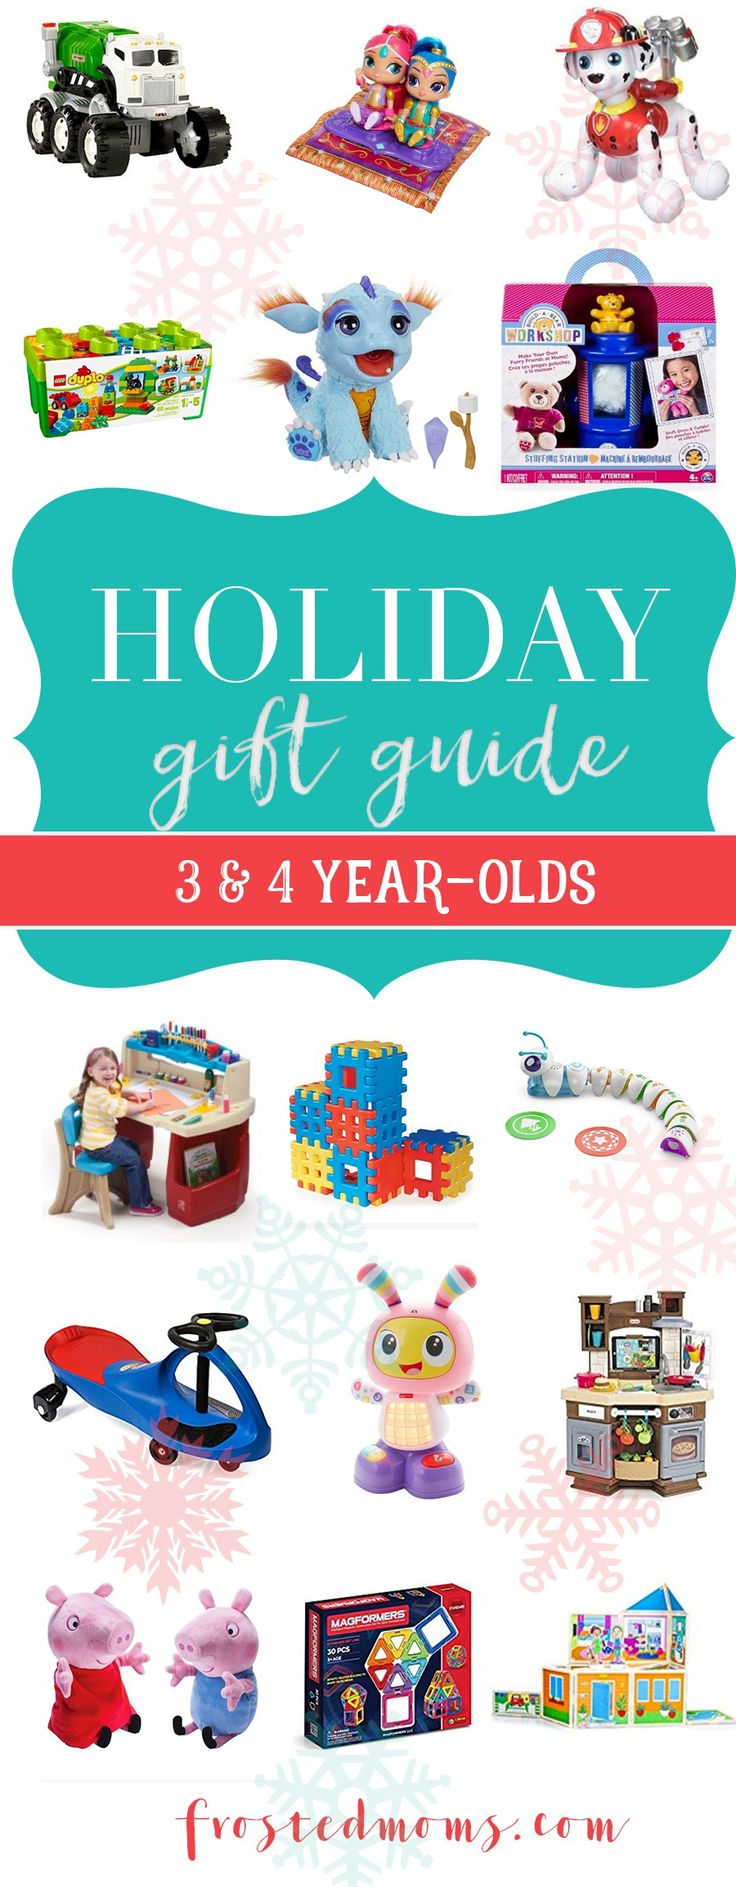 Toys For Christmas List : Best images about toys for year old boy on pinterest